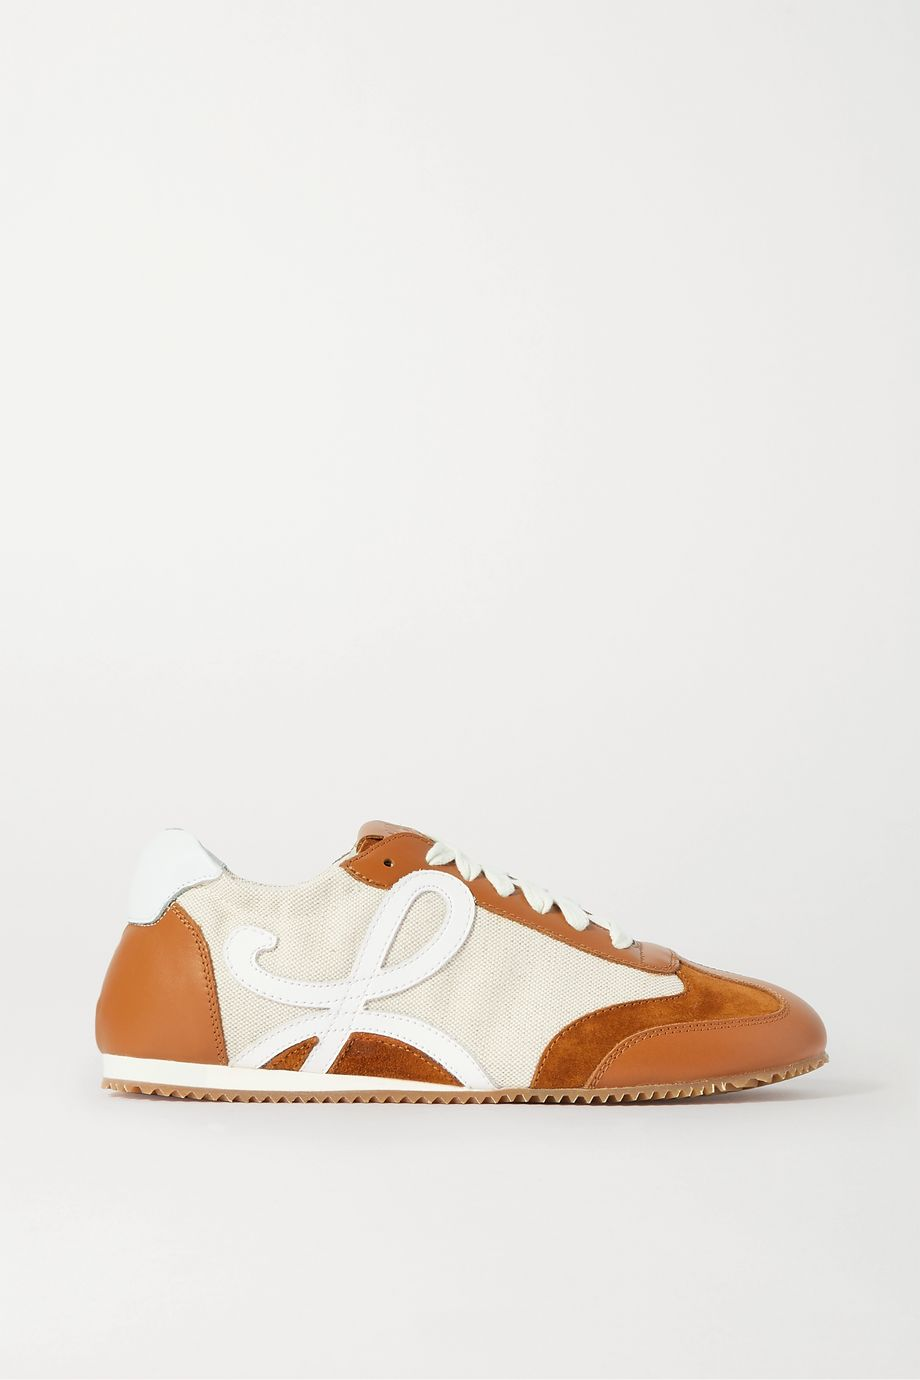 Loewe Suede, canvas and leather sneakers